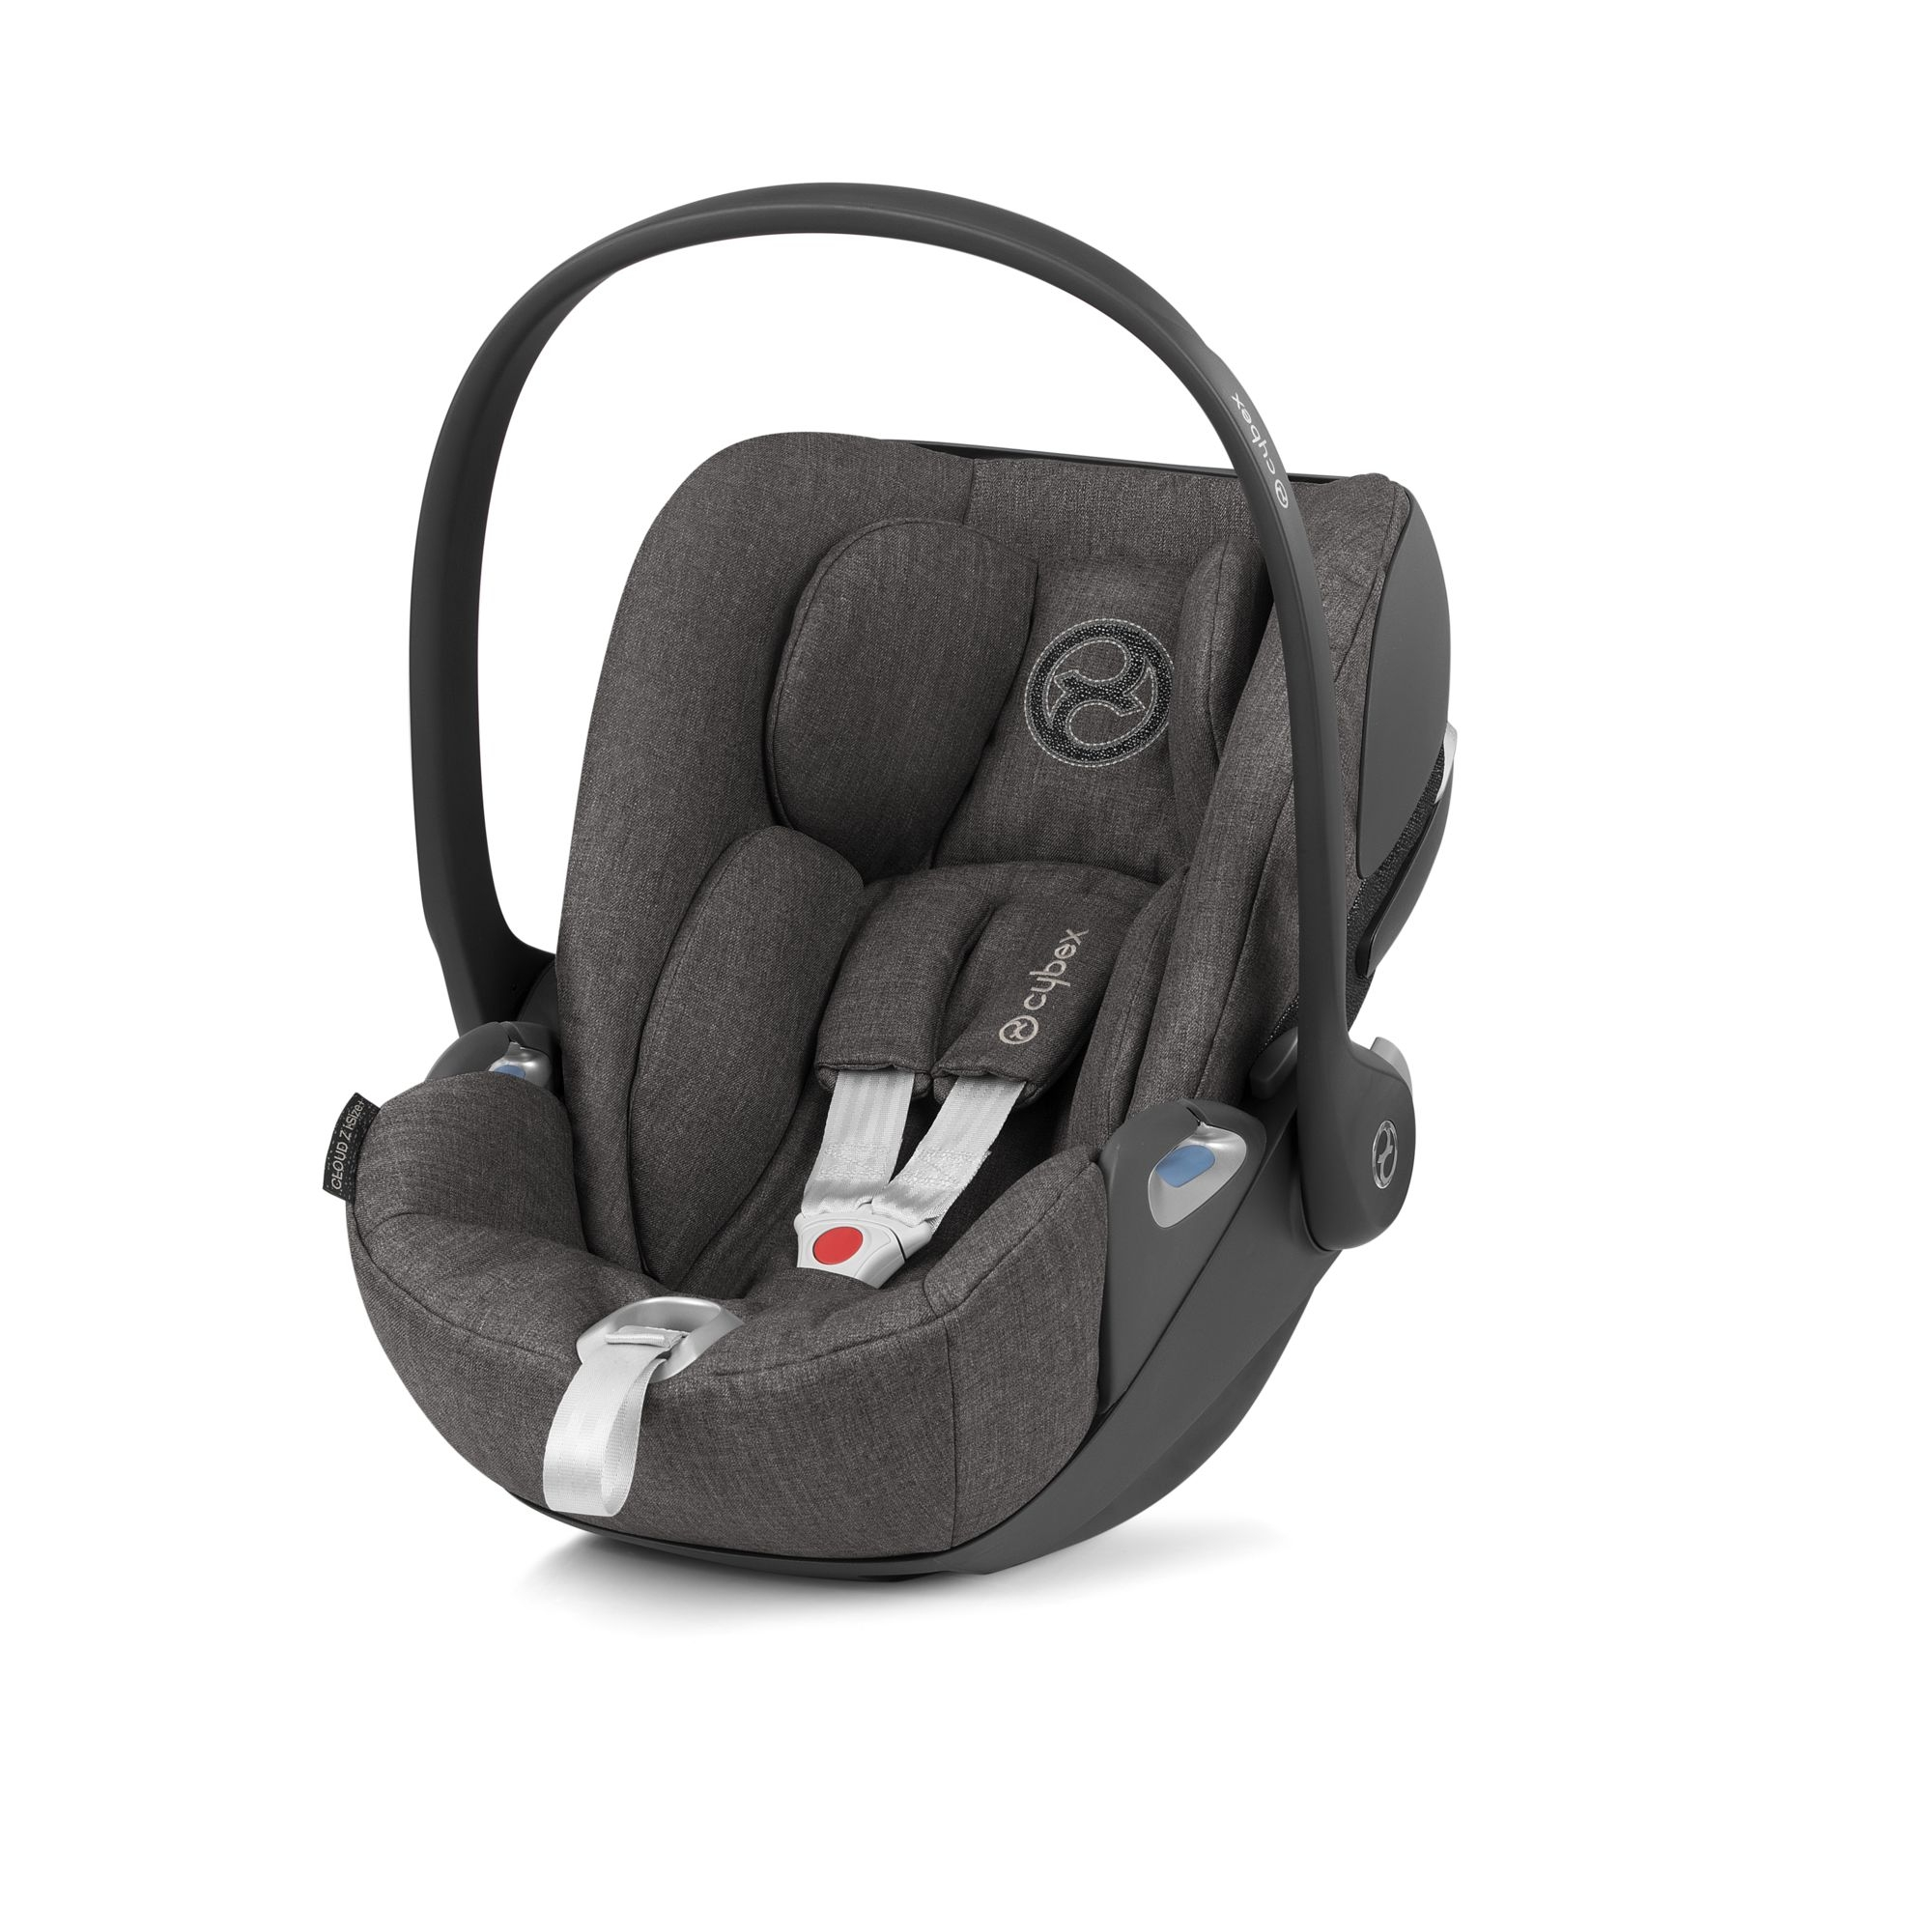 Автокресло Cybex Cloud Z i-Size Plus Manhattan Grey, серый